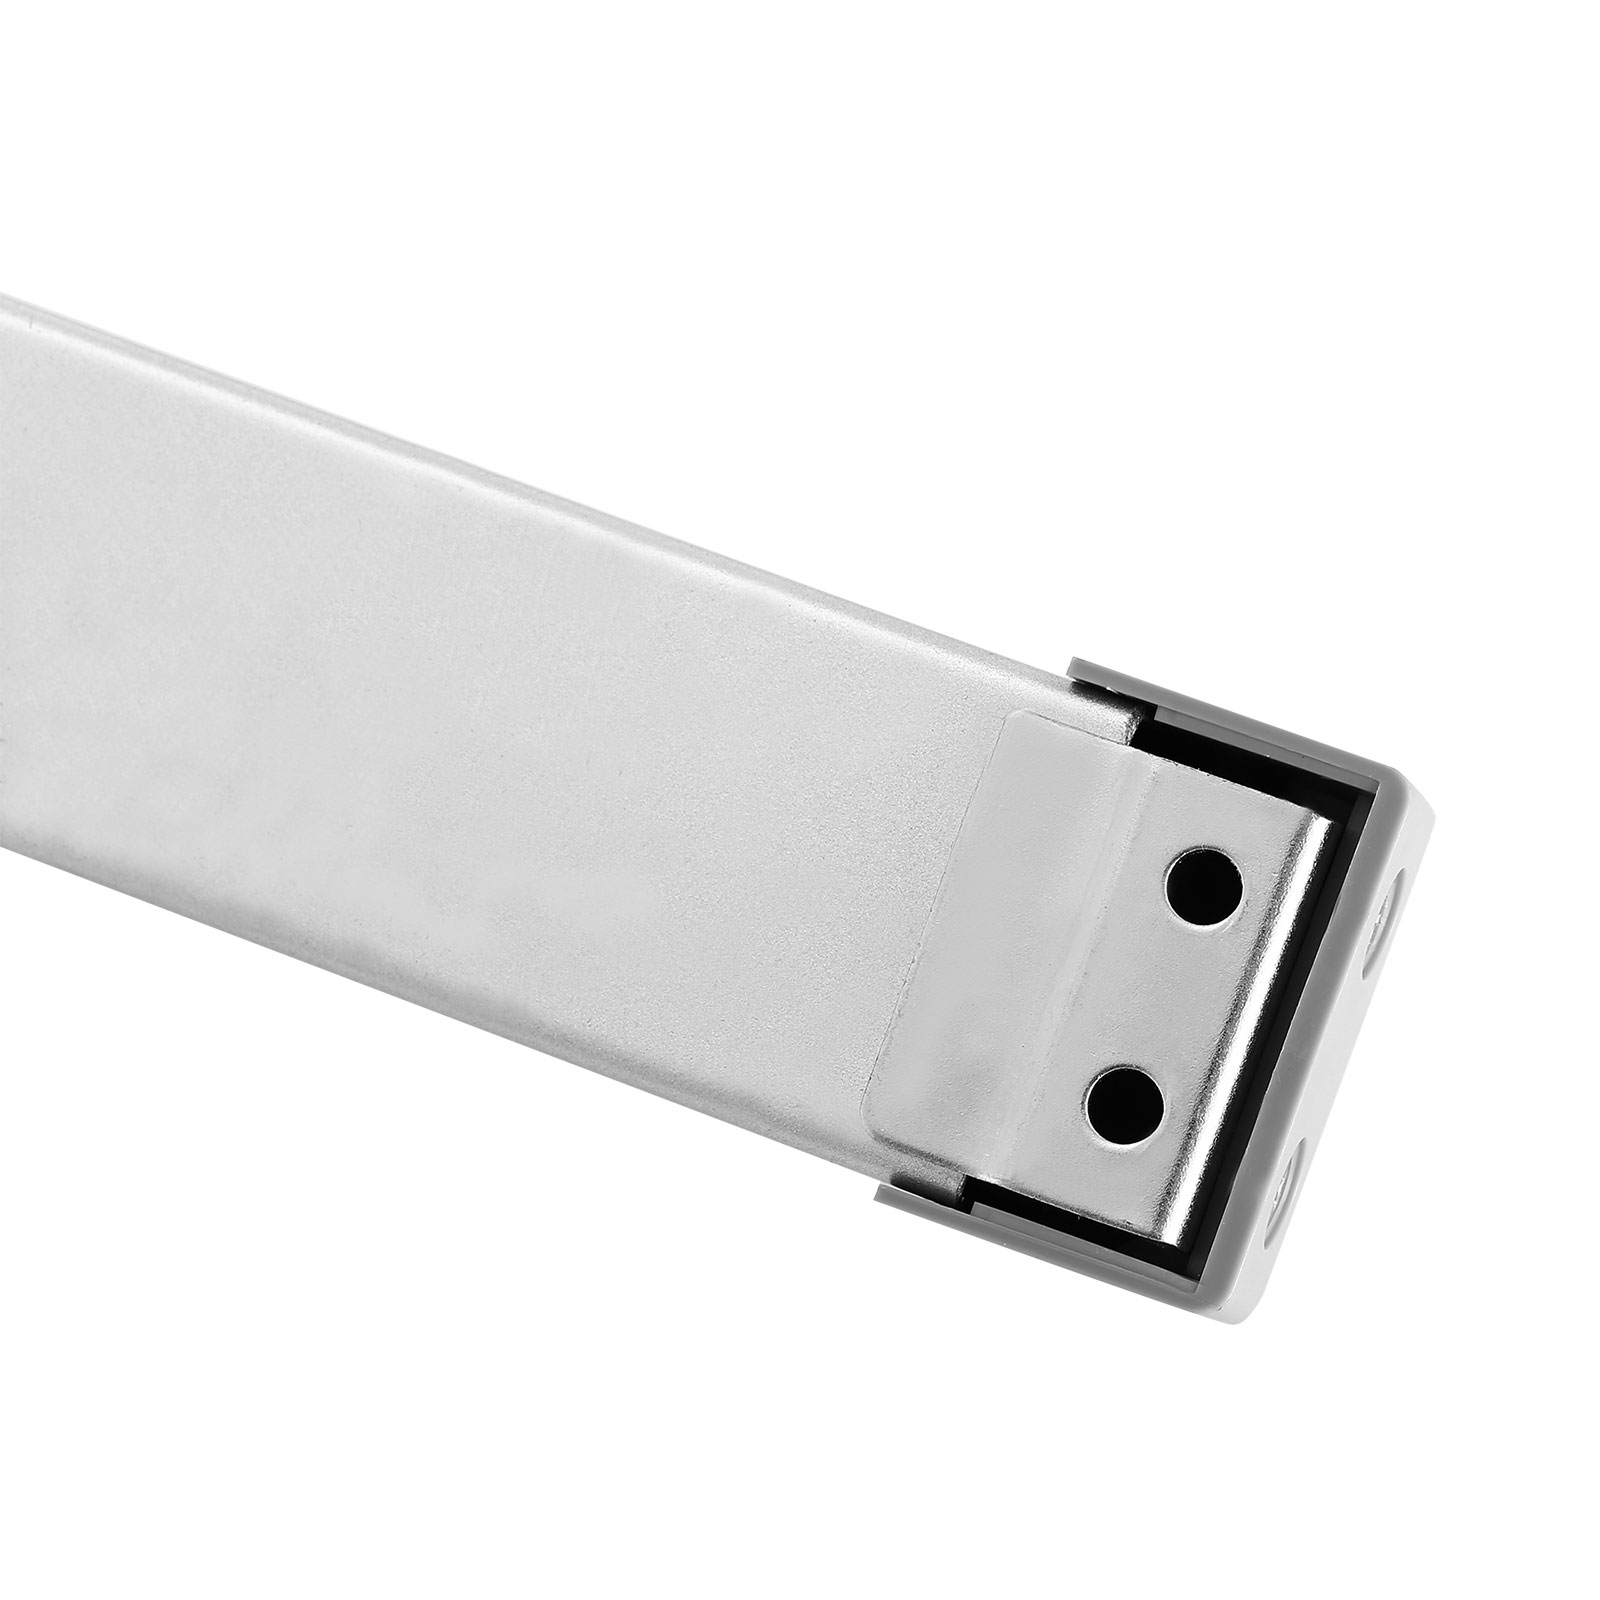 Door Panic Bar Parts: Door Push Bar With Handle Panic Exit Device Silver